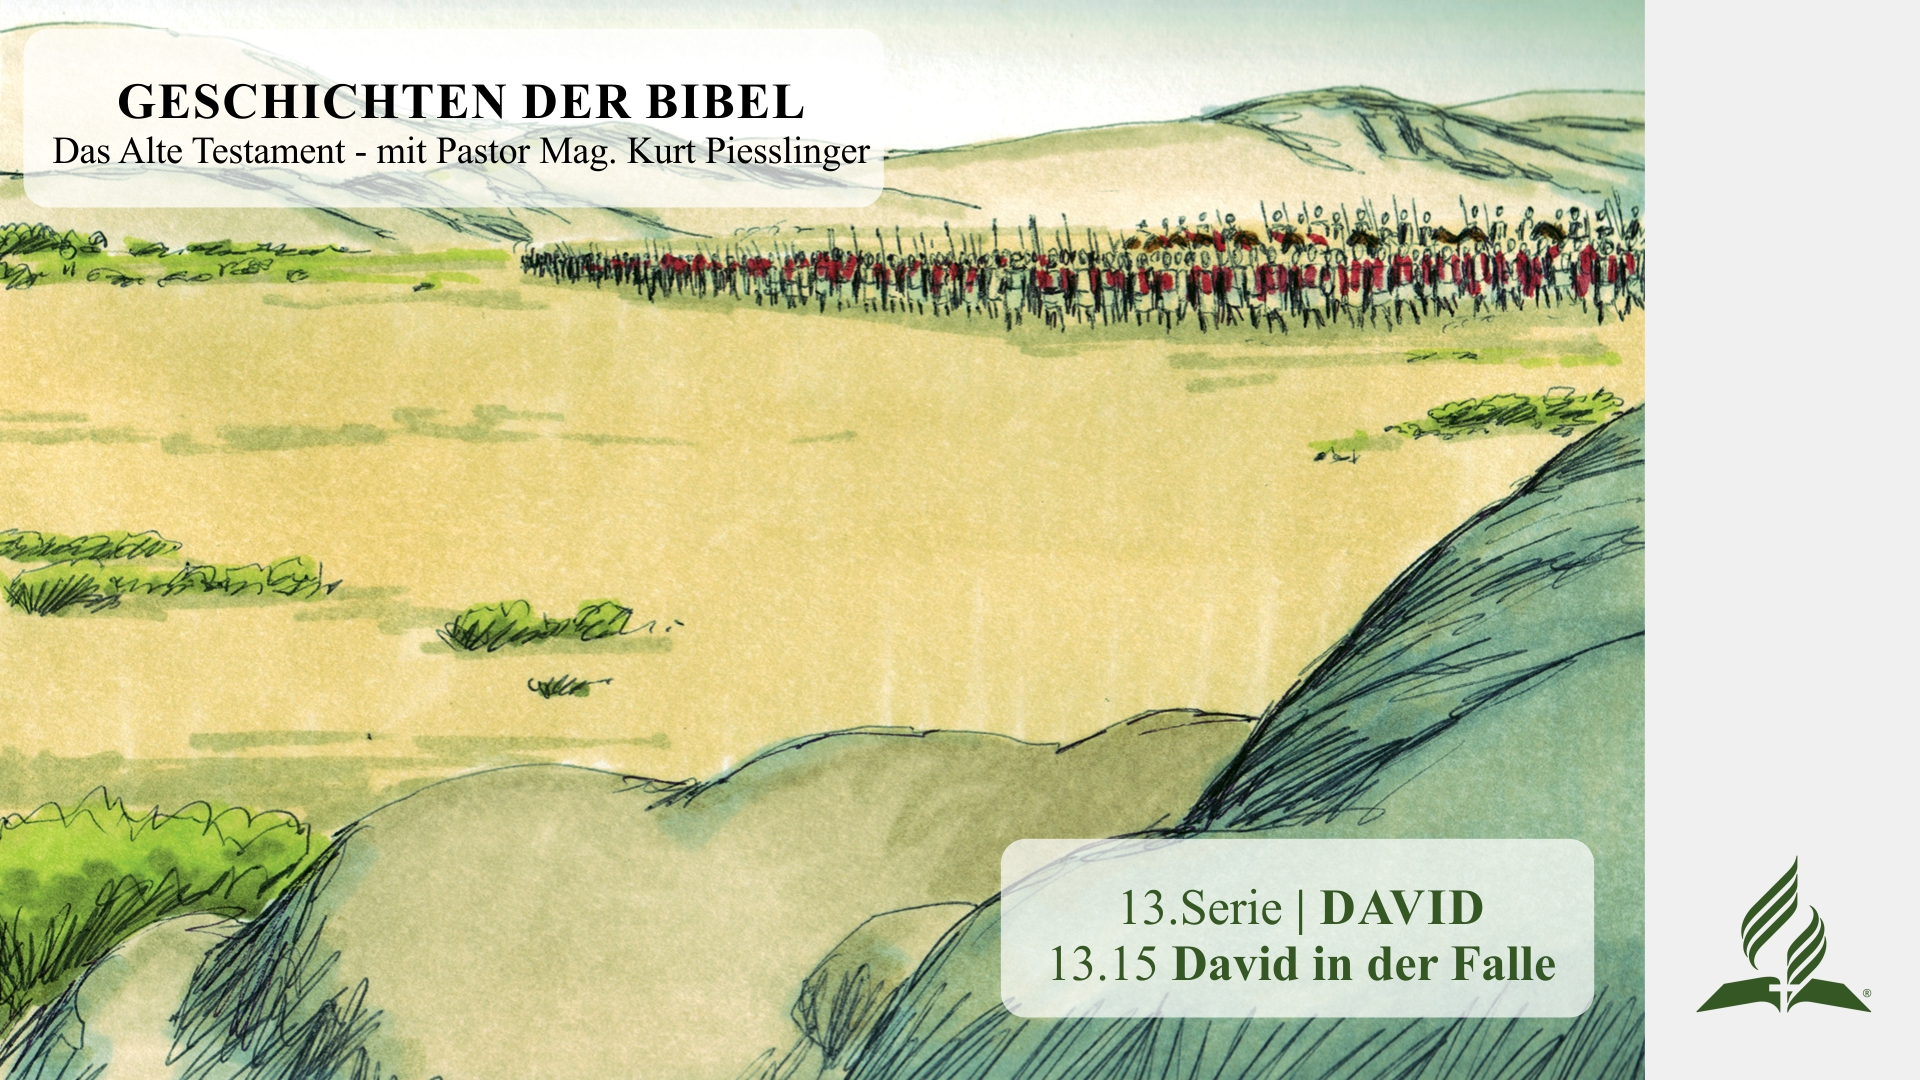 GESCHICHTEN DER BIBEL: 13.15 David in der Falle – 13.DAVID | Pastor Mag. Kurt Piesslinger